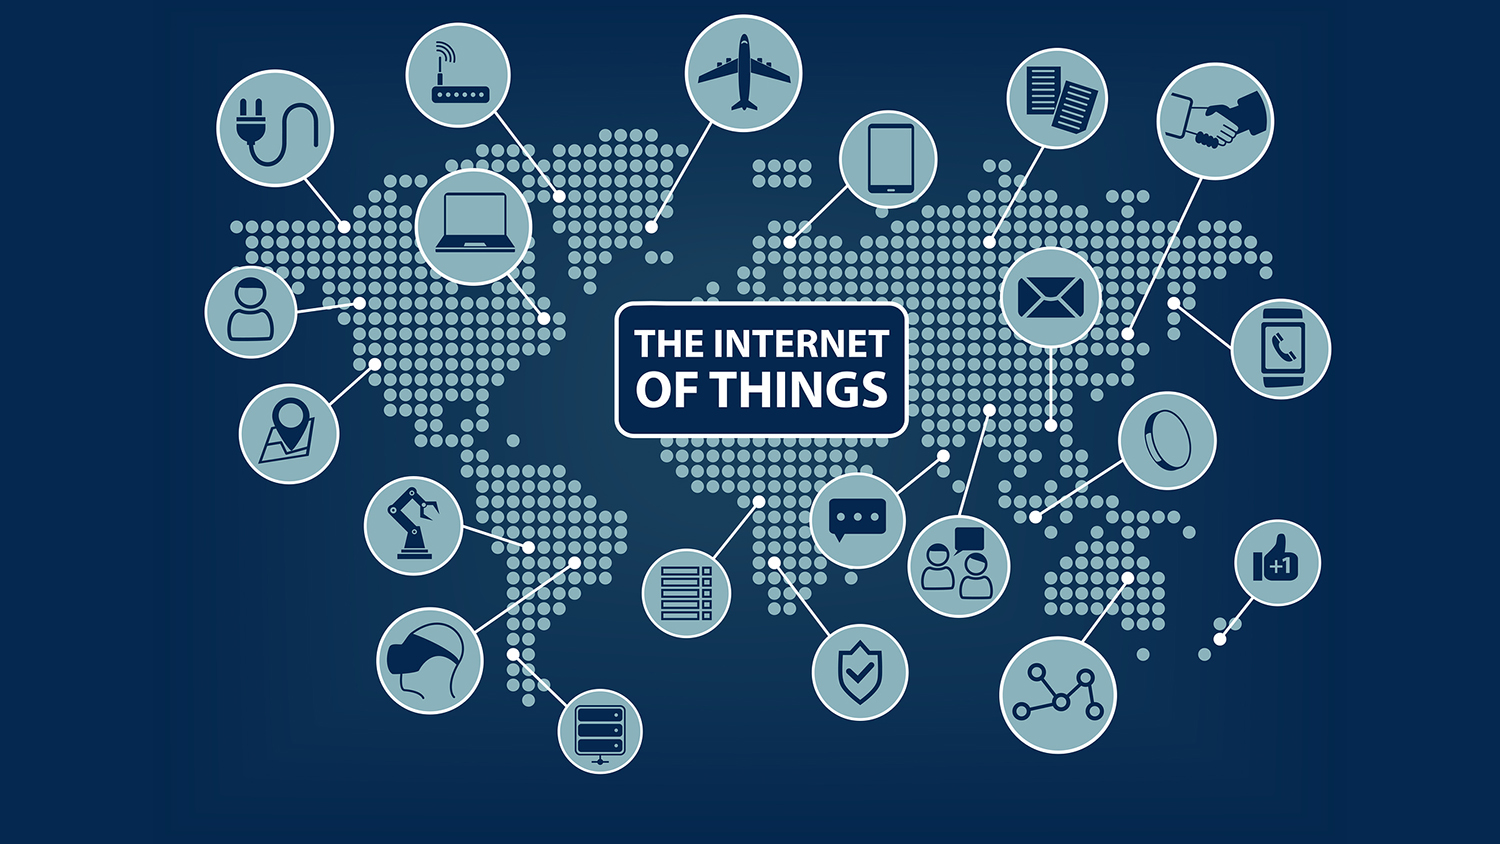 Taller de proyectos IoT (Internet of Things)